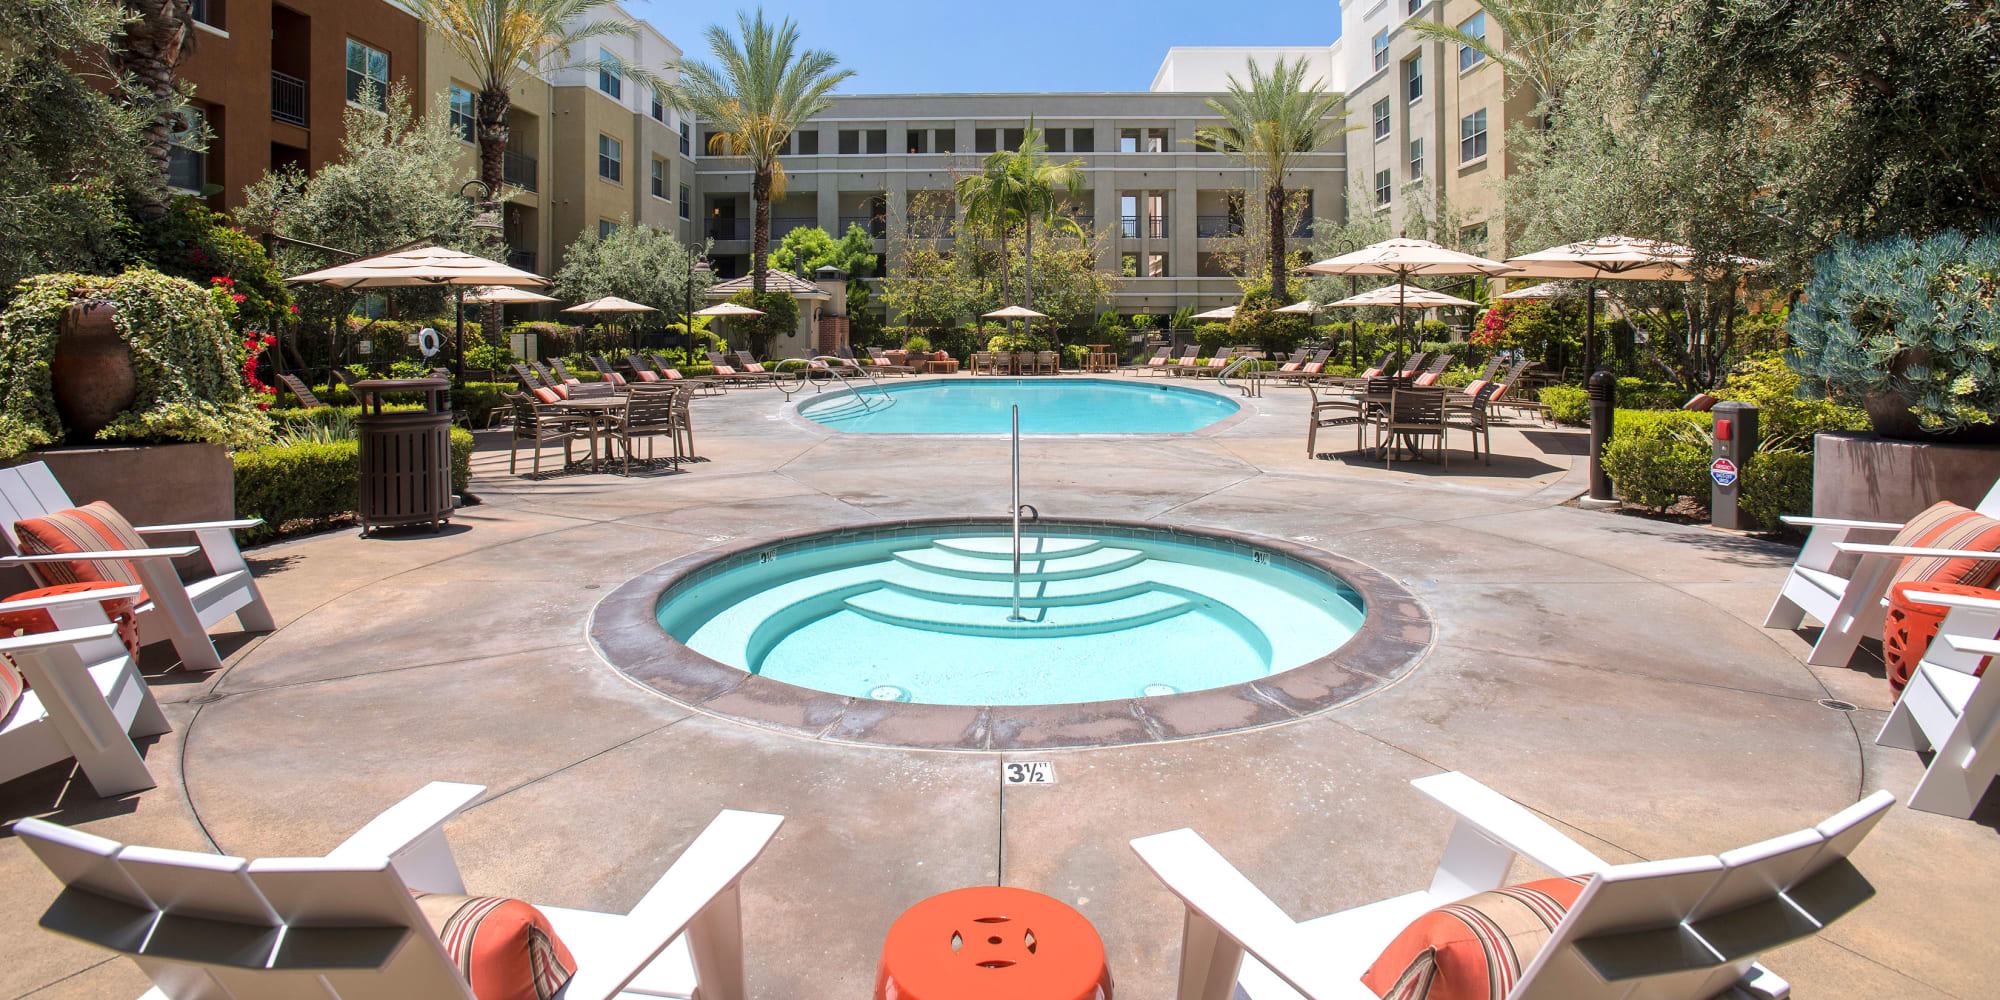 Apartments at Paragon at Old Town in Monrovia, California